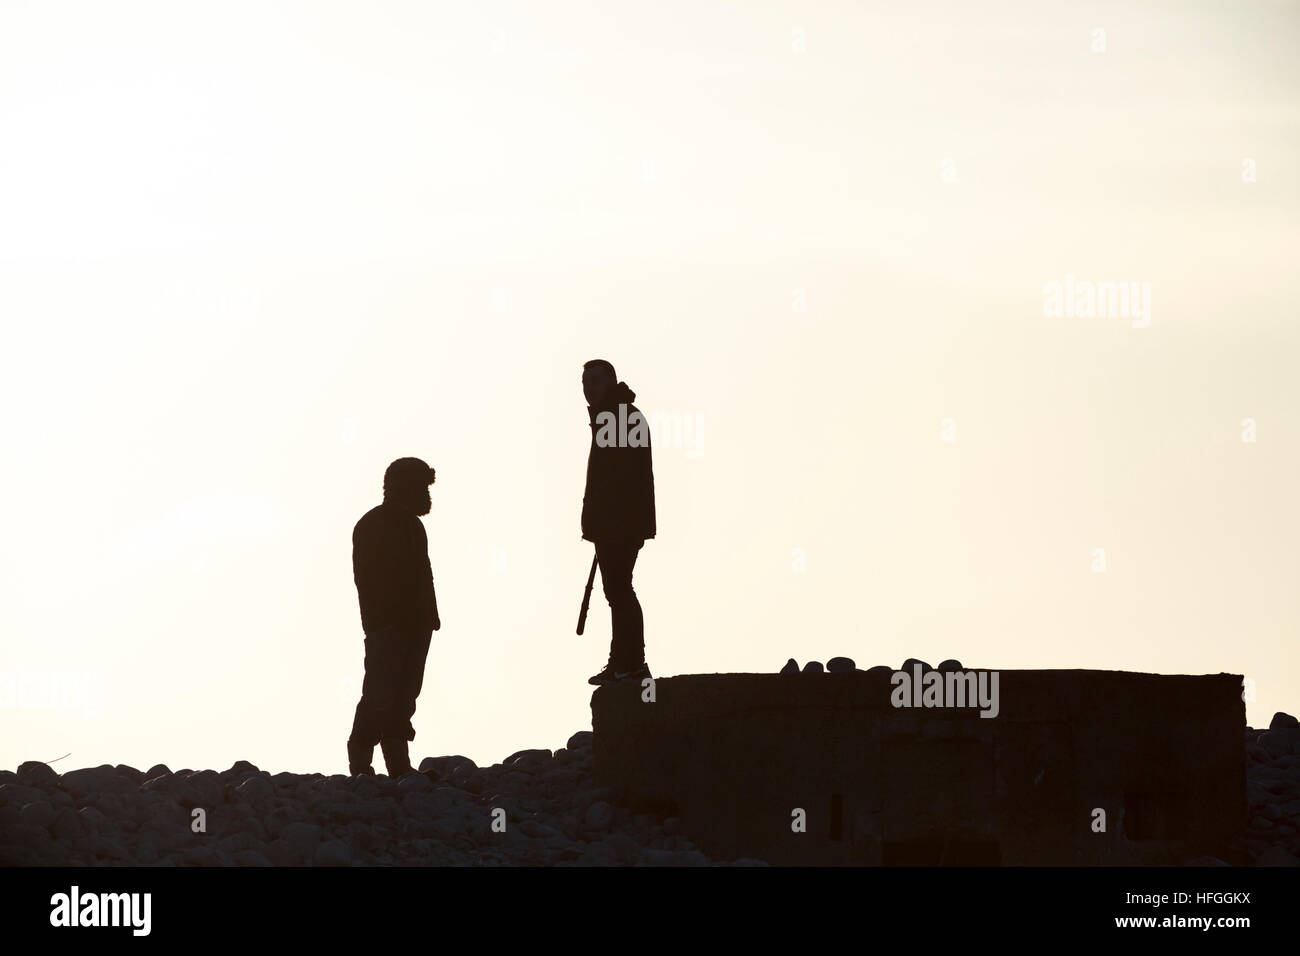 silhouette of two threatening adolescents - Stock Image